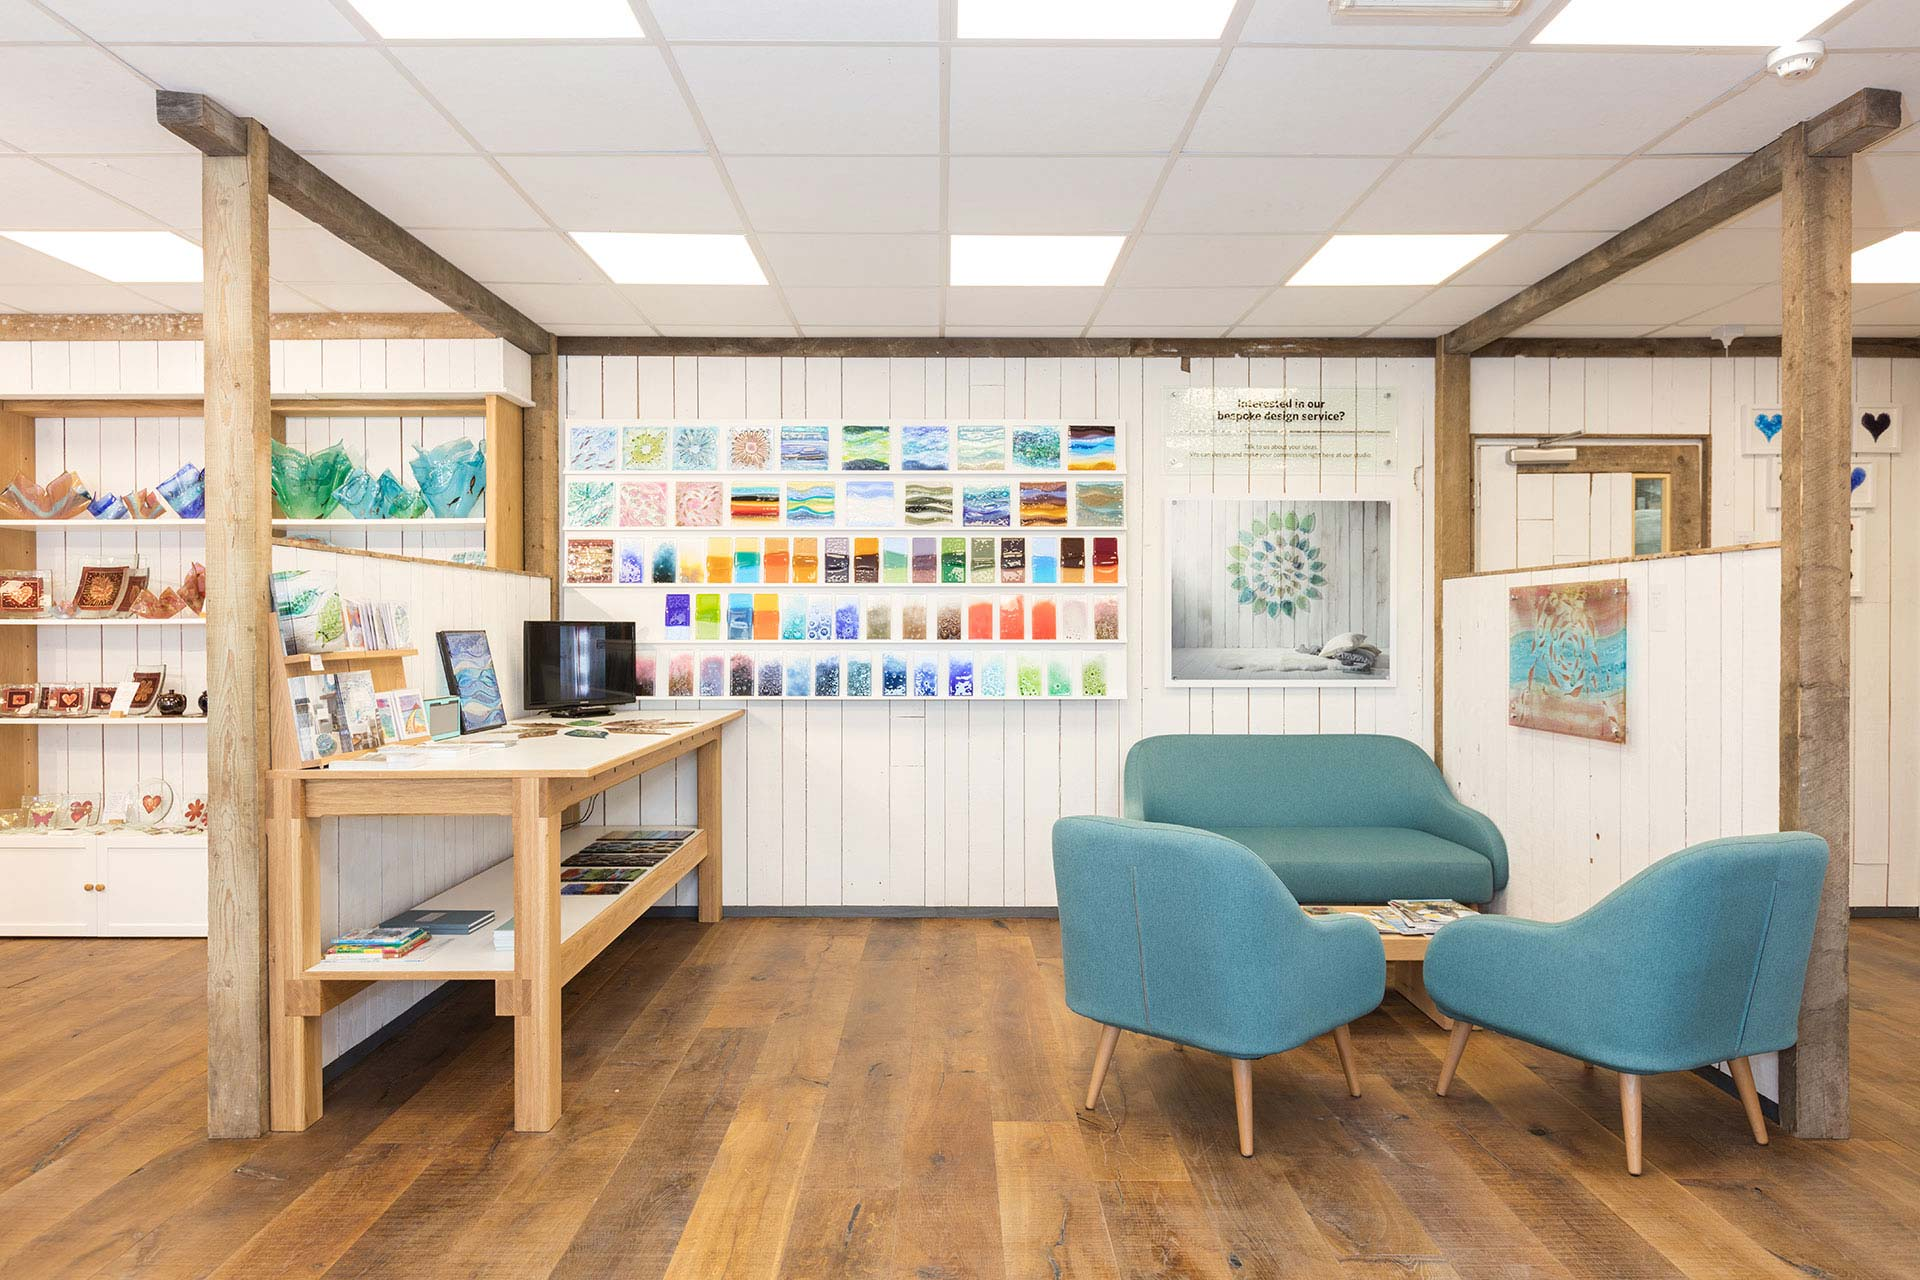 Informal seating area at Jo Down's store designed by Boex